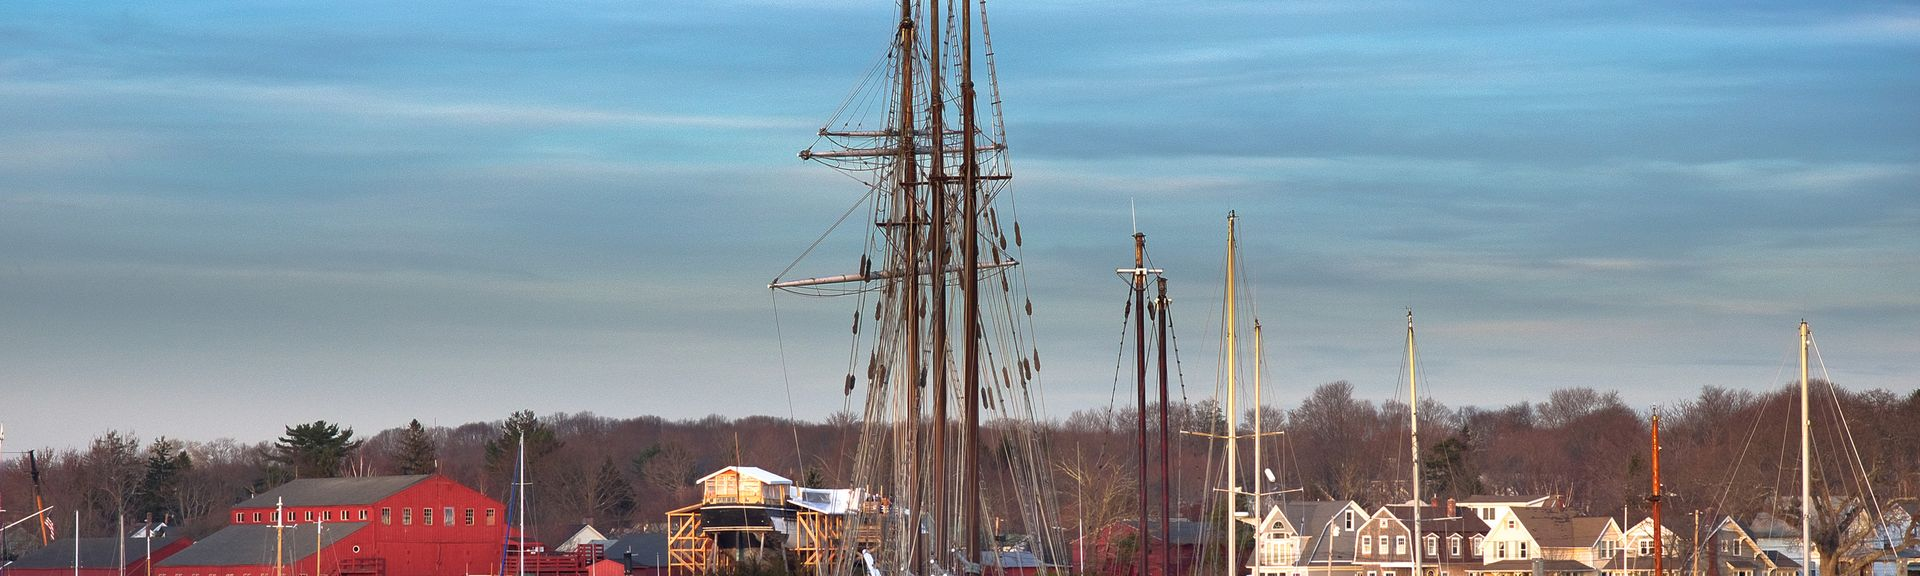 Mystic, Connecticut, Estados Unidos